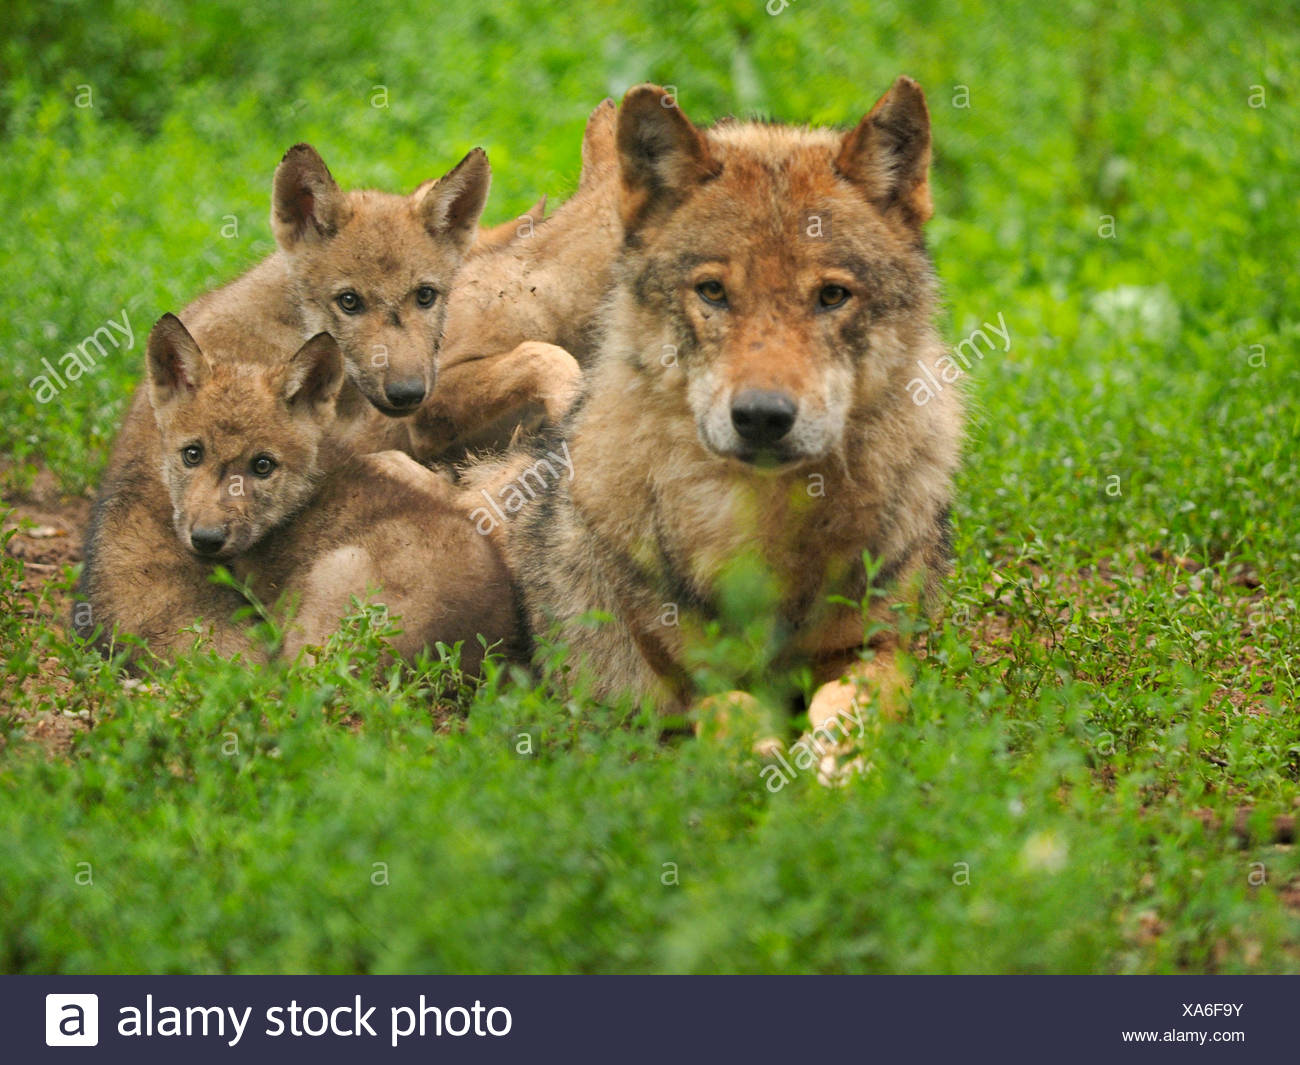 European gray wolf (Canis lupus lupus), wolf with pups, Germany, Bavaria - Stock Image